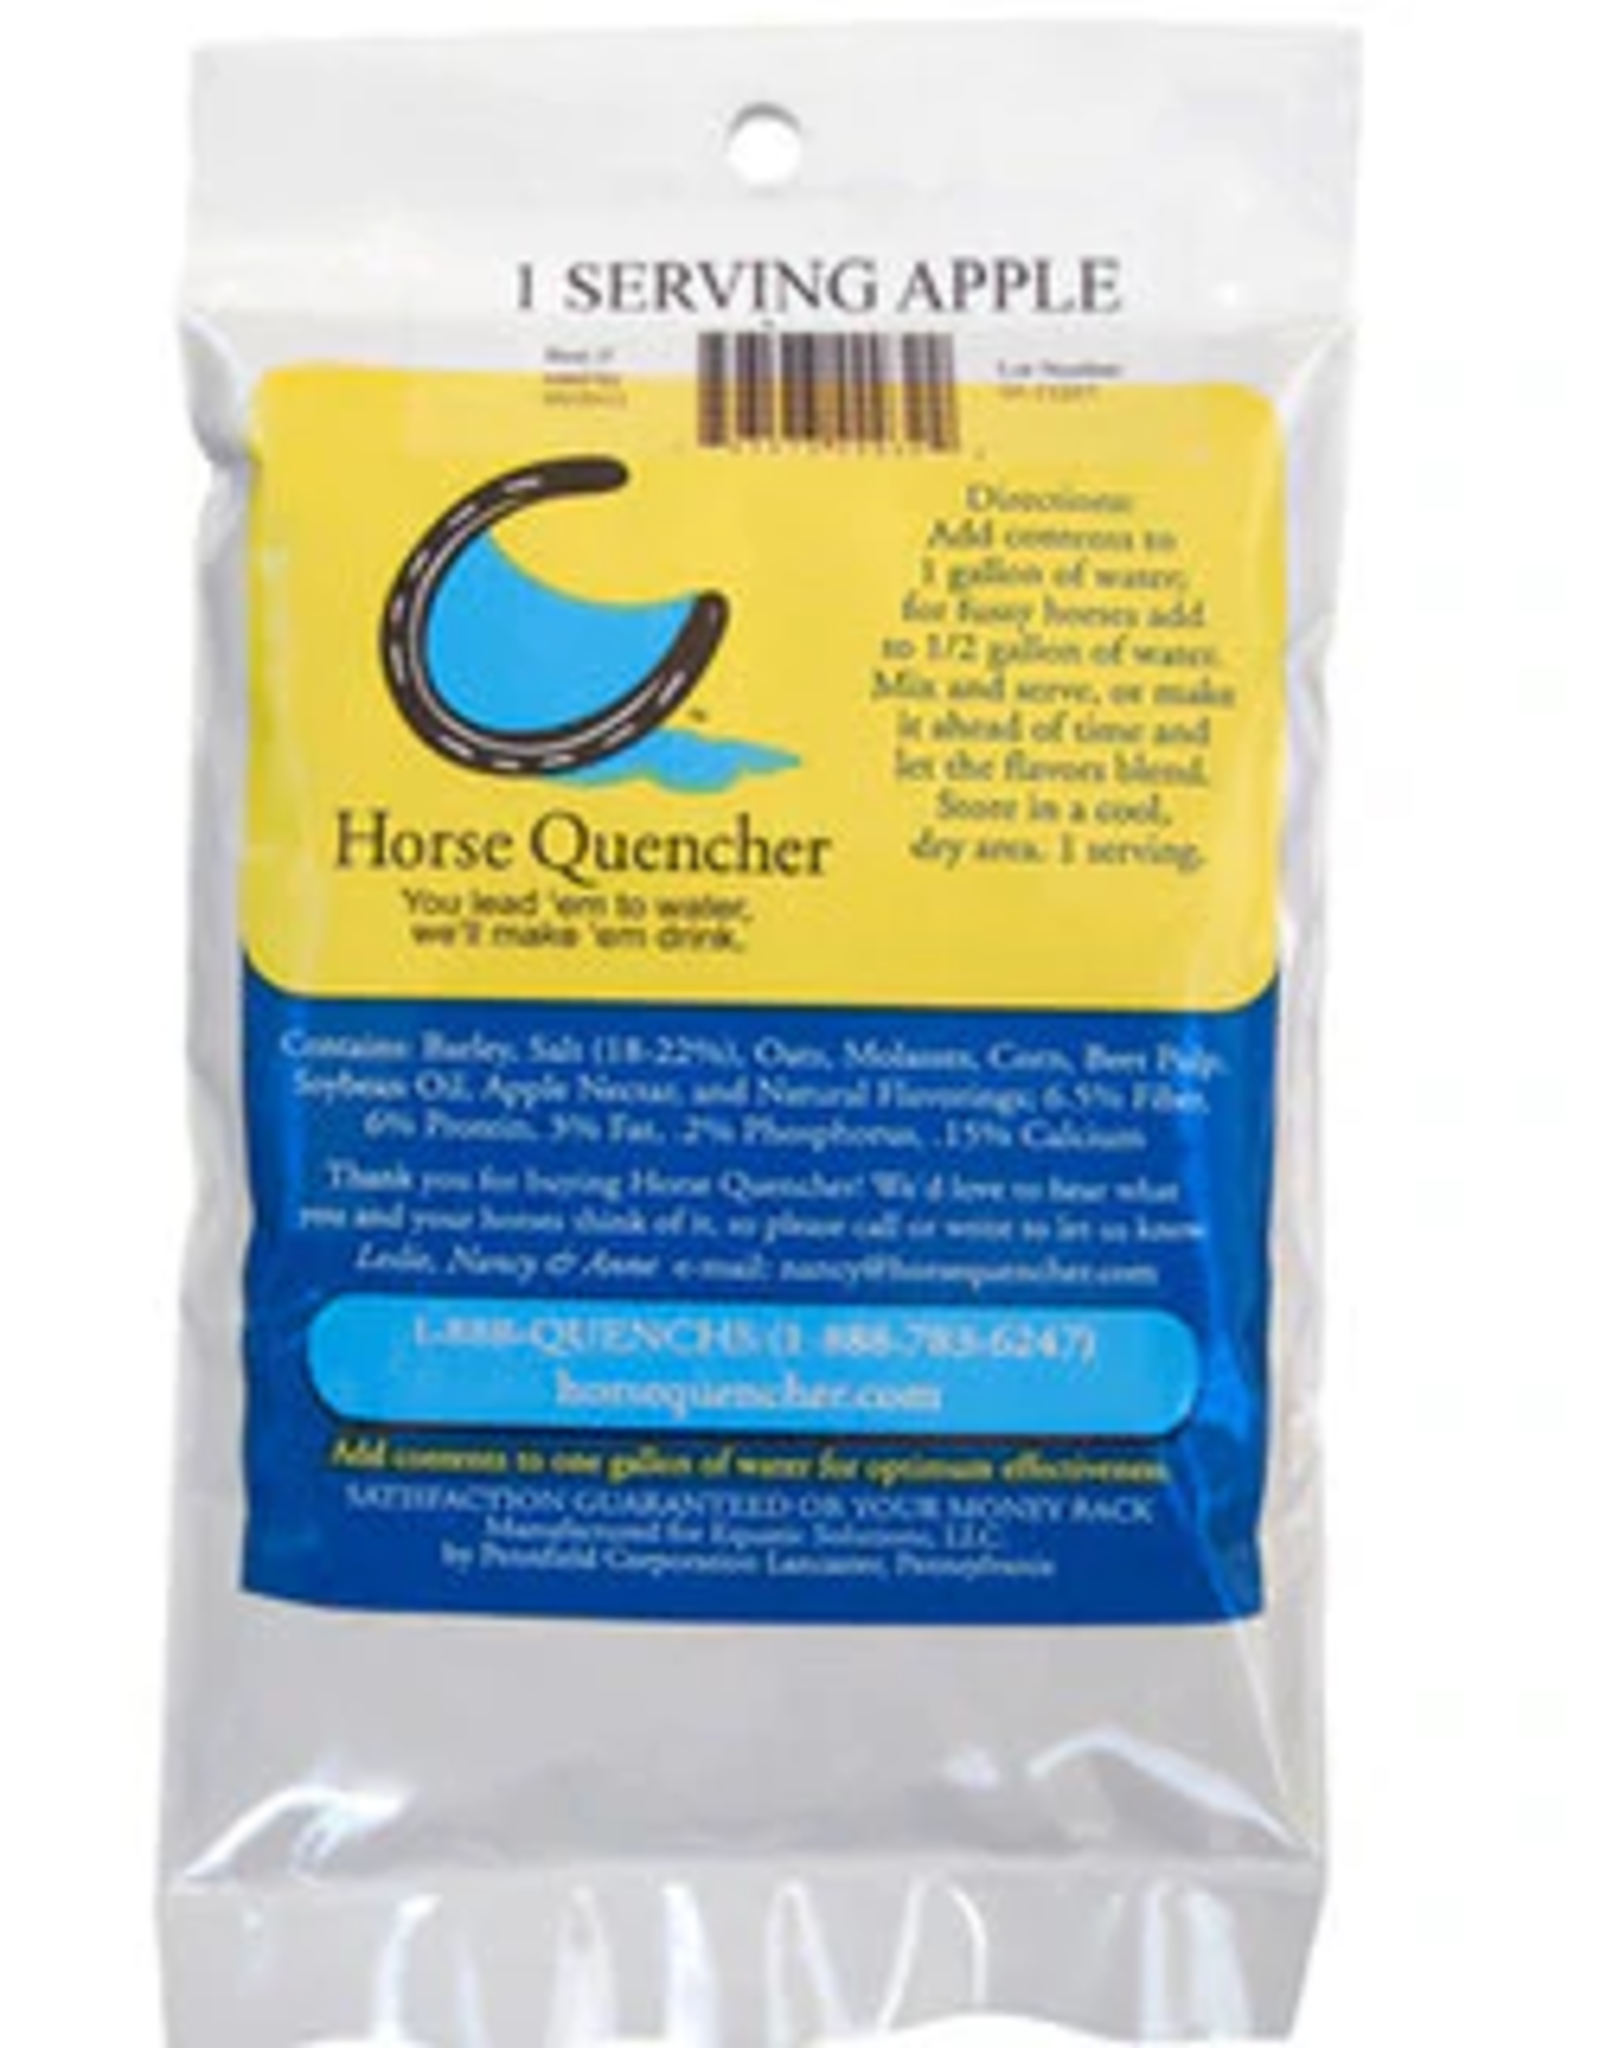 HORSE QUENCHER SINGLE SERVING